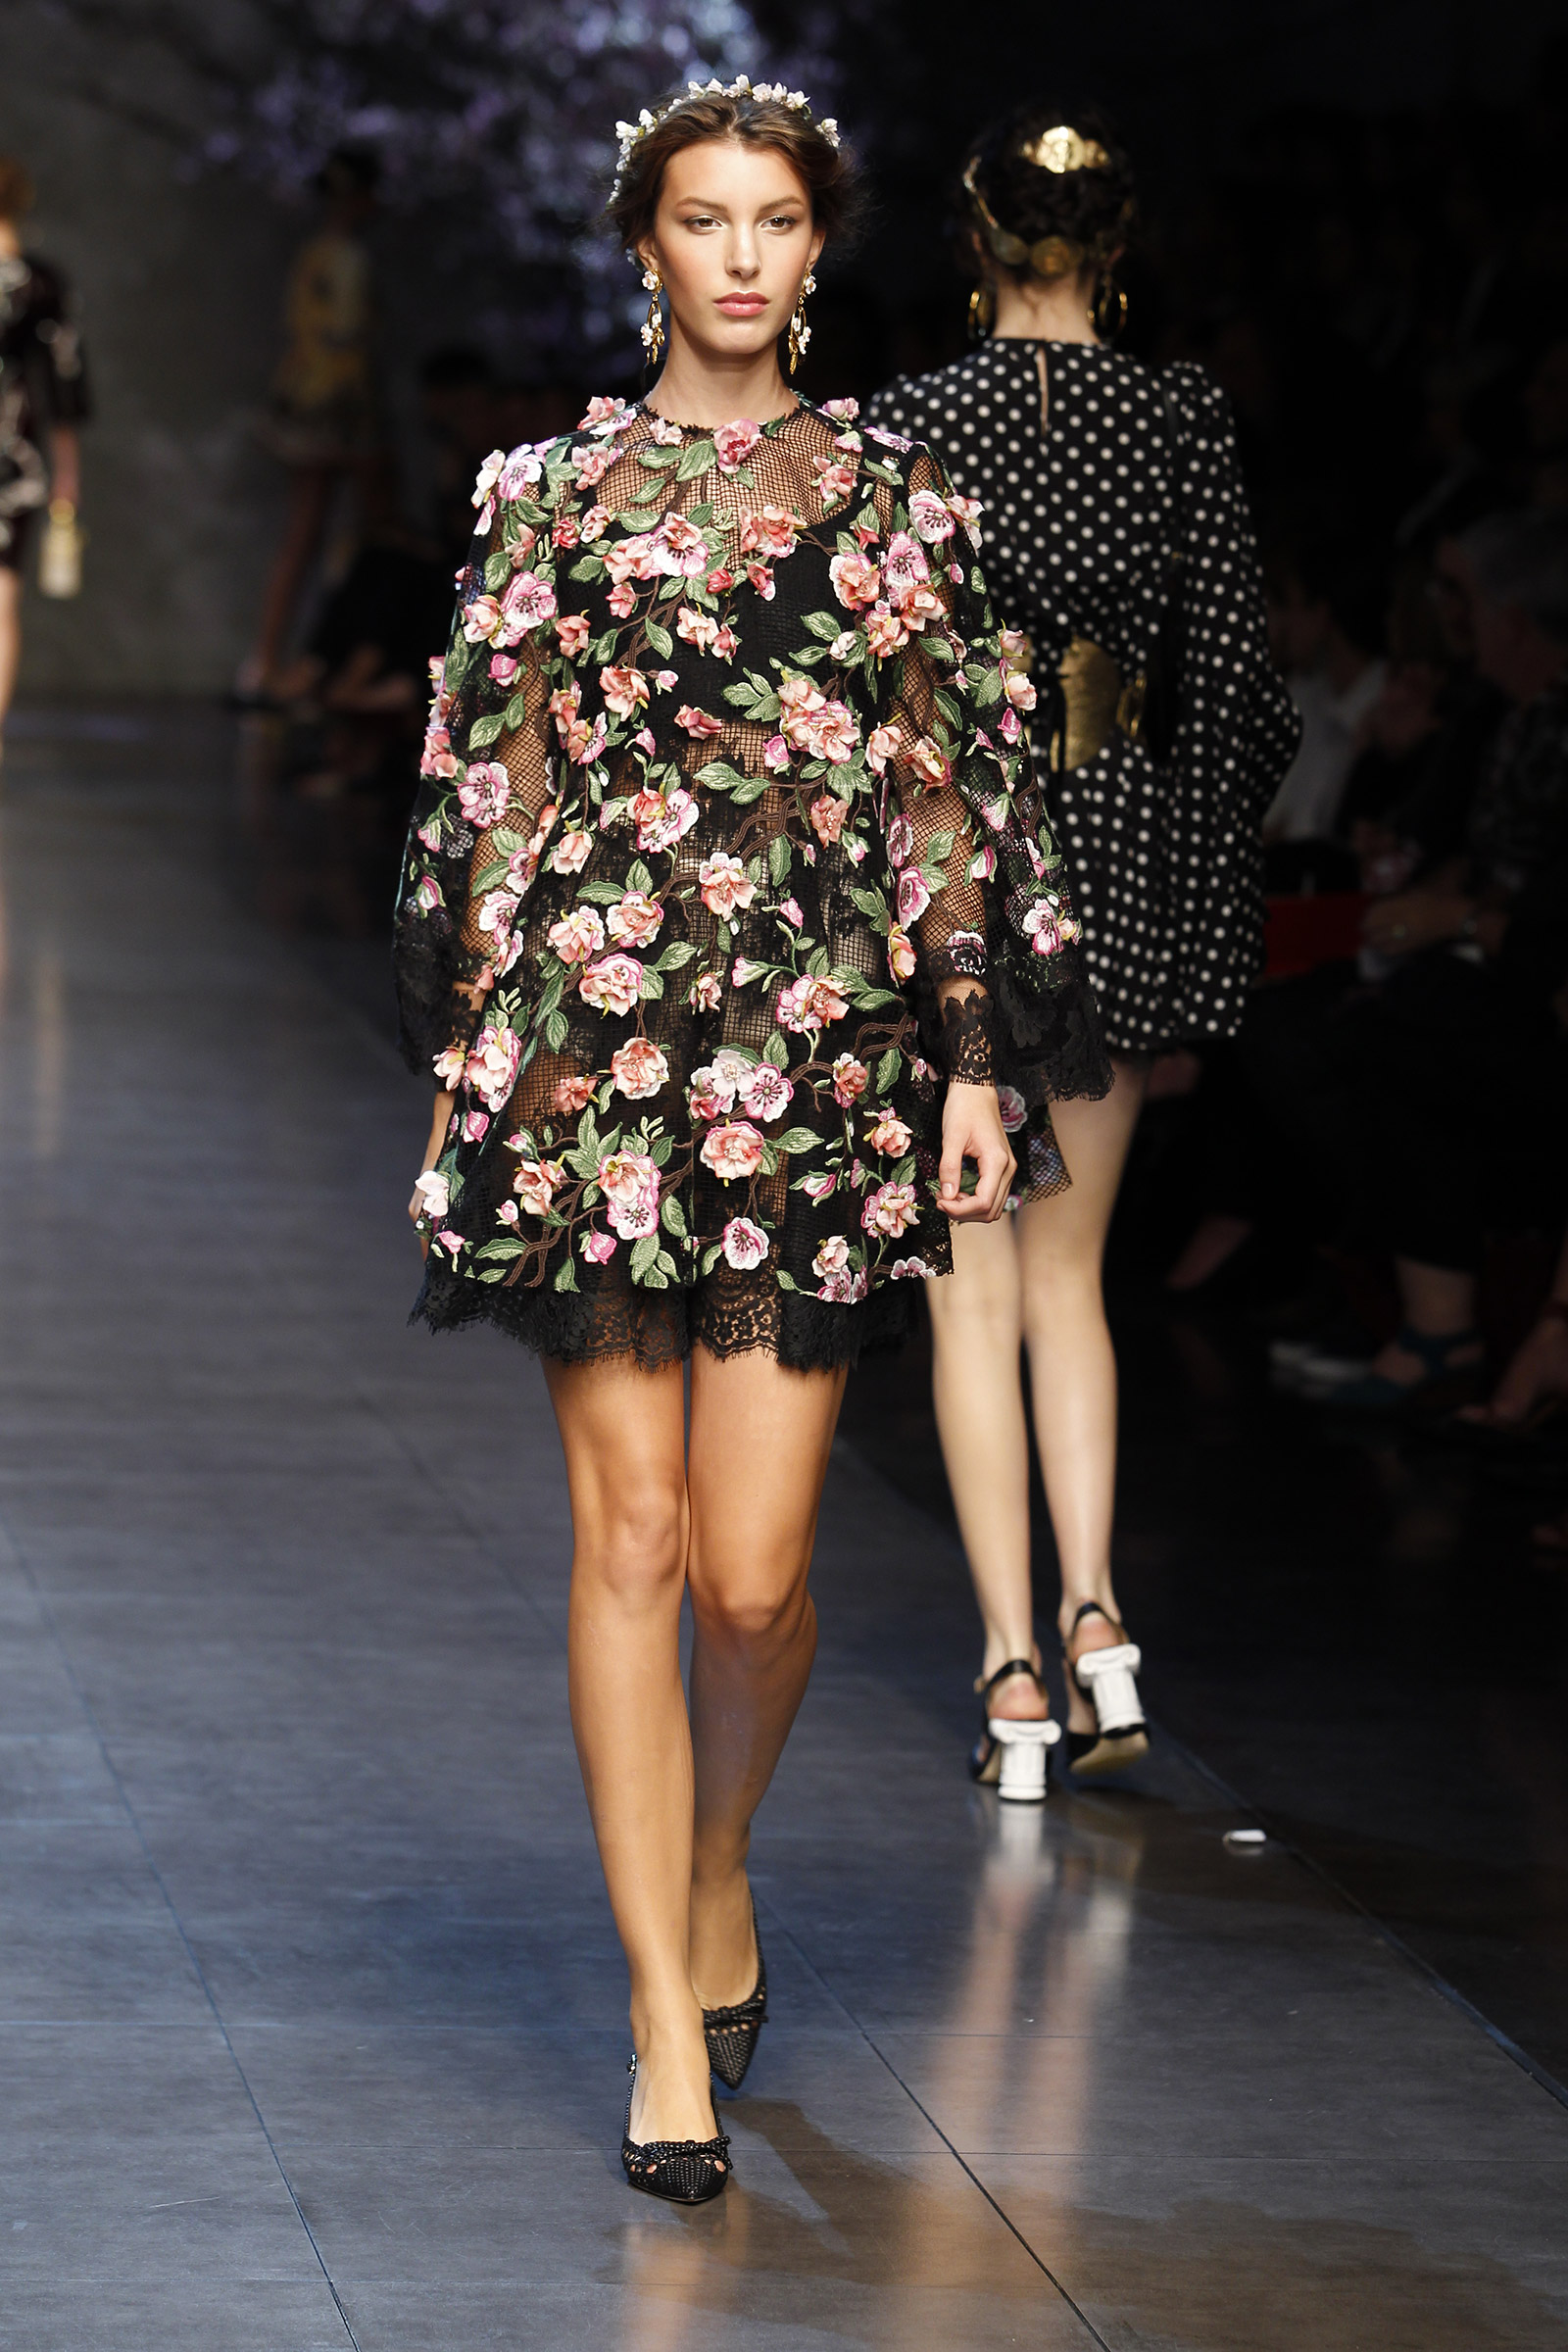 Dolce Gabbana Ss 2015: The Secret Garden